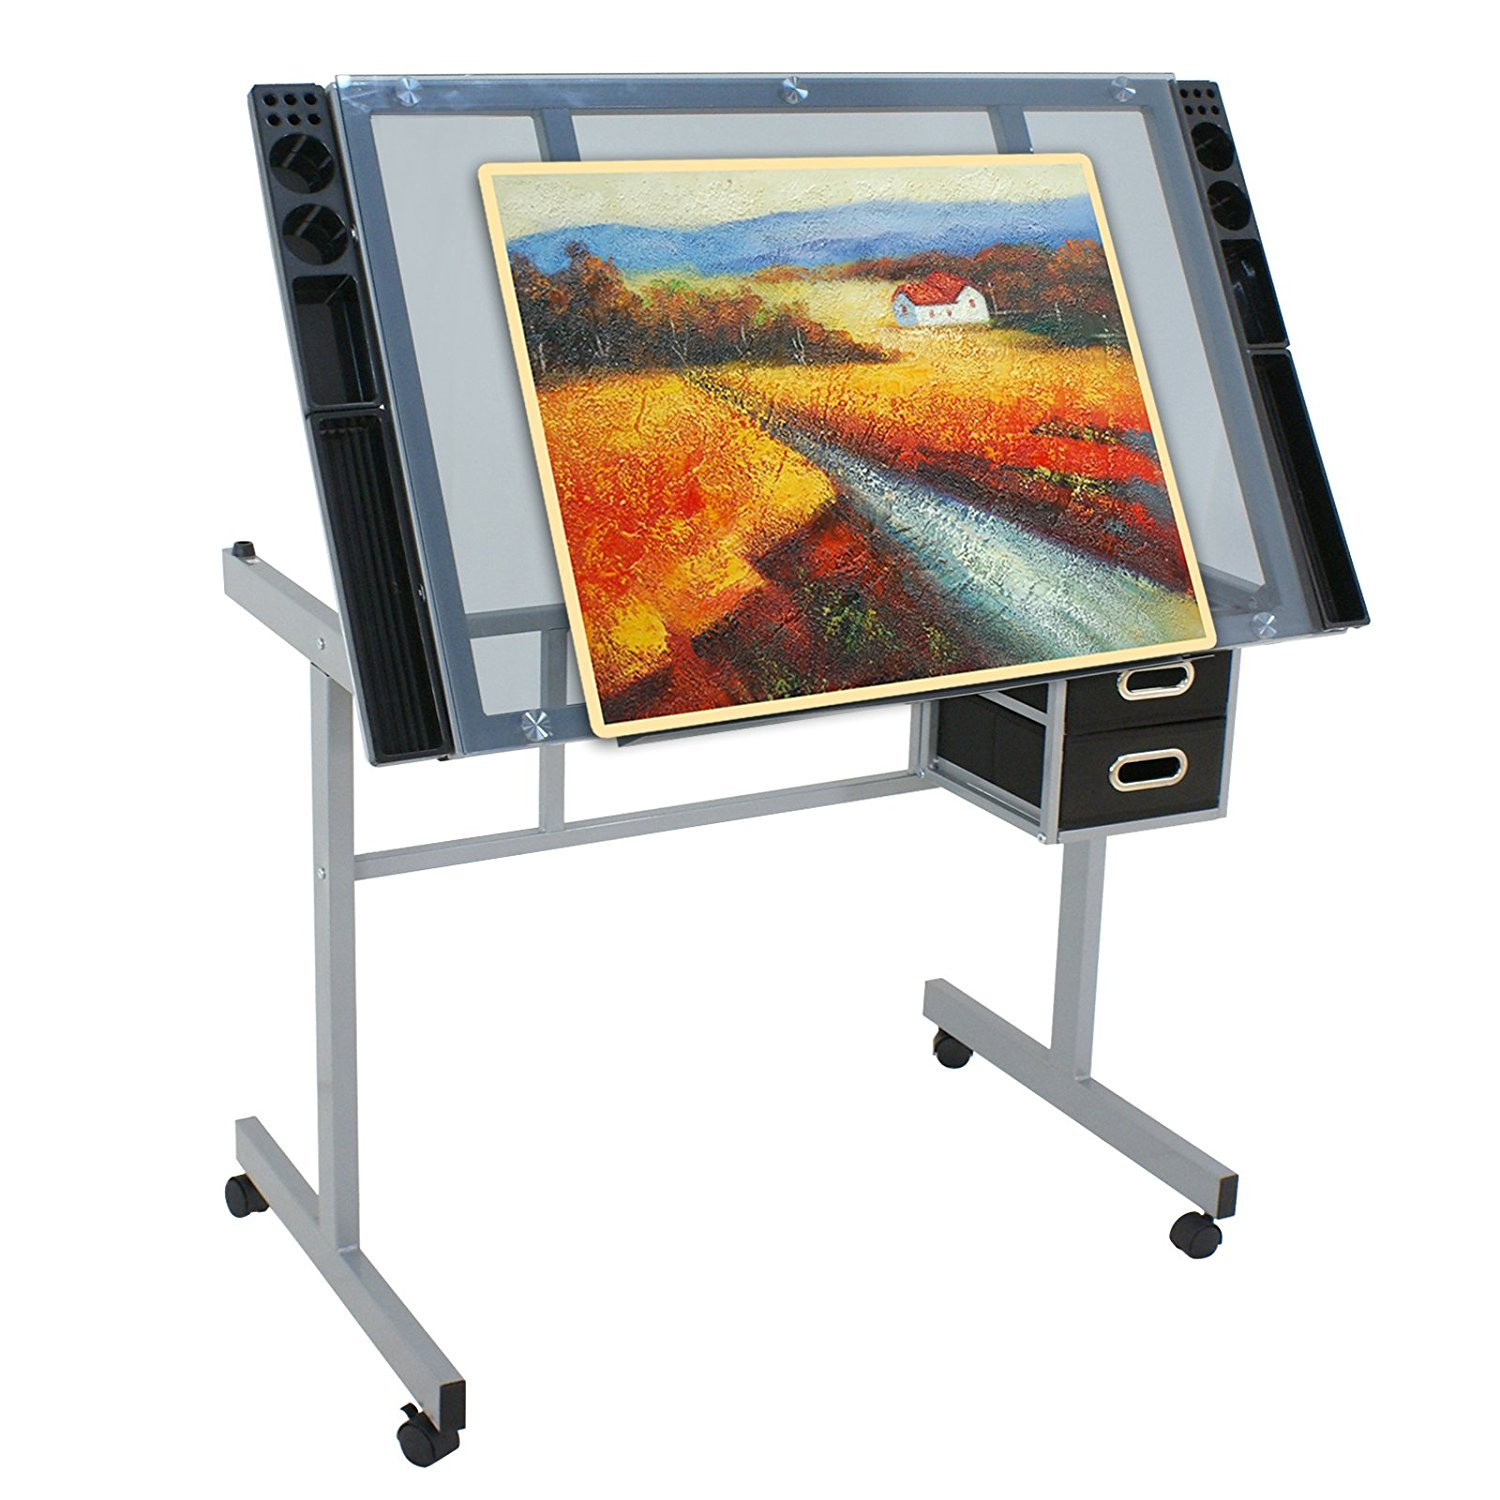 Super Deal Glass Top Adjustable Drawing Desk Craft Station Drafting Table Tempered Glass Top Art Craft w/Drawers and Wheels